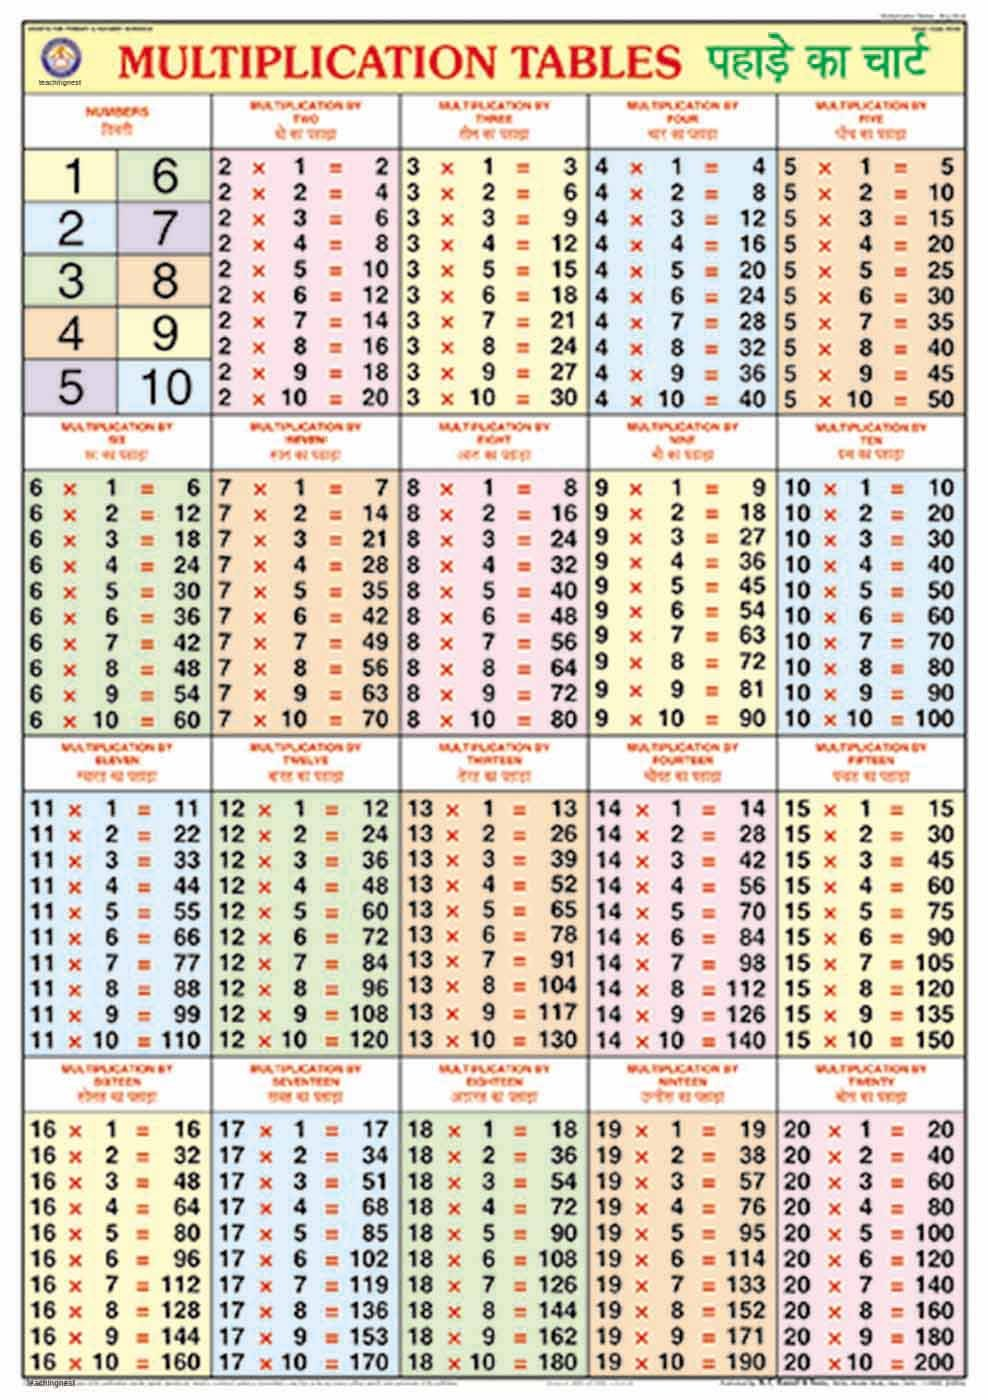 Maths tables 2 to 20 - Multiplication tables 2 to 15 ...